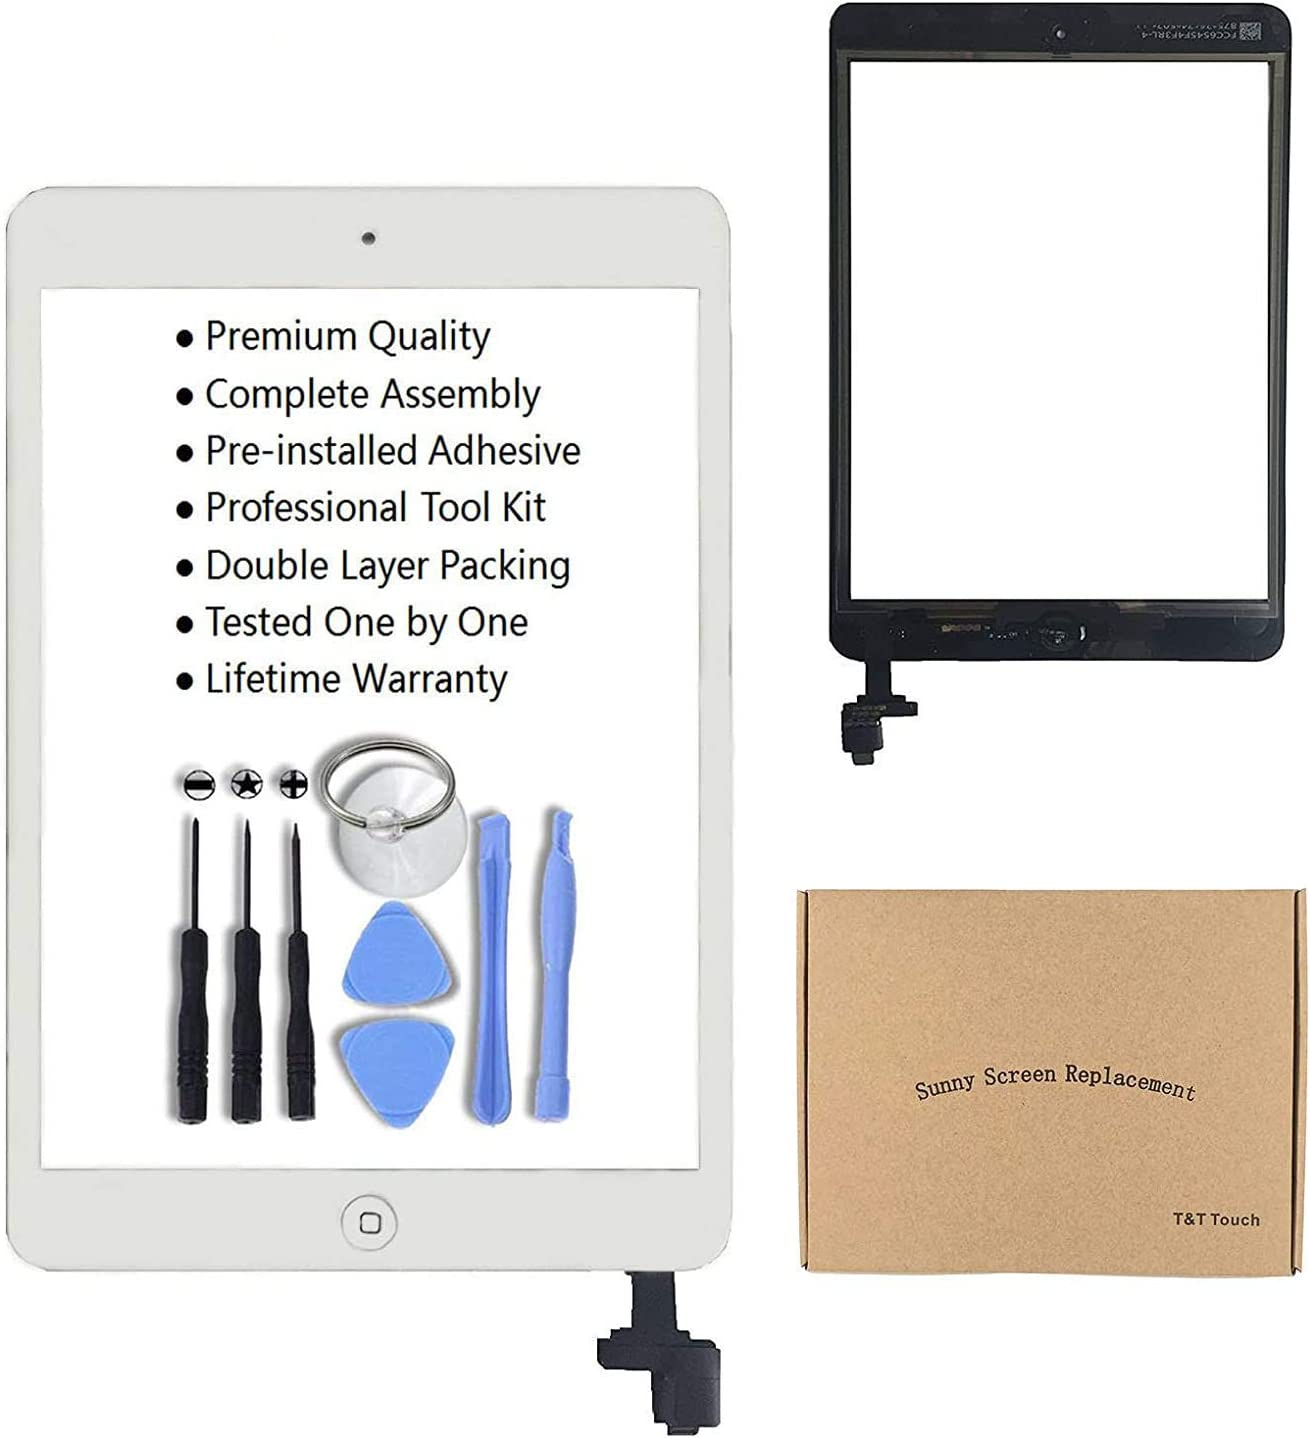 White Glass Replacement Digitizer Replacement Screen Replacement for iPad Mini Model A1432 A1454 A1455 A1489 A1490 Full Digitizer Glass Assembly Kits Includes Adhesive Stickers and Professional Tools